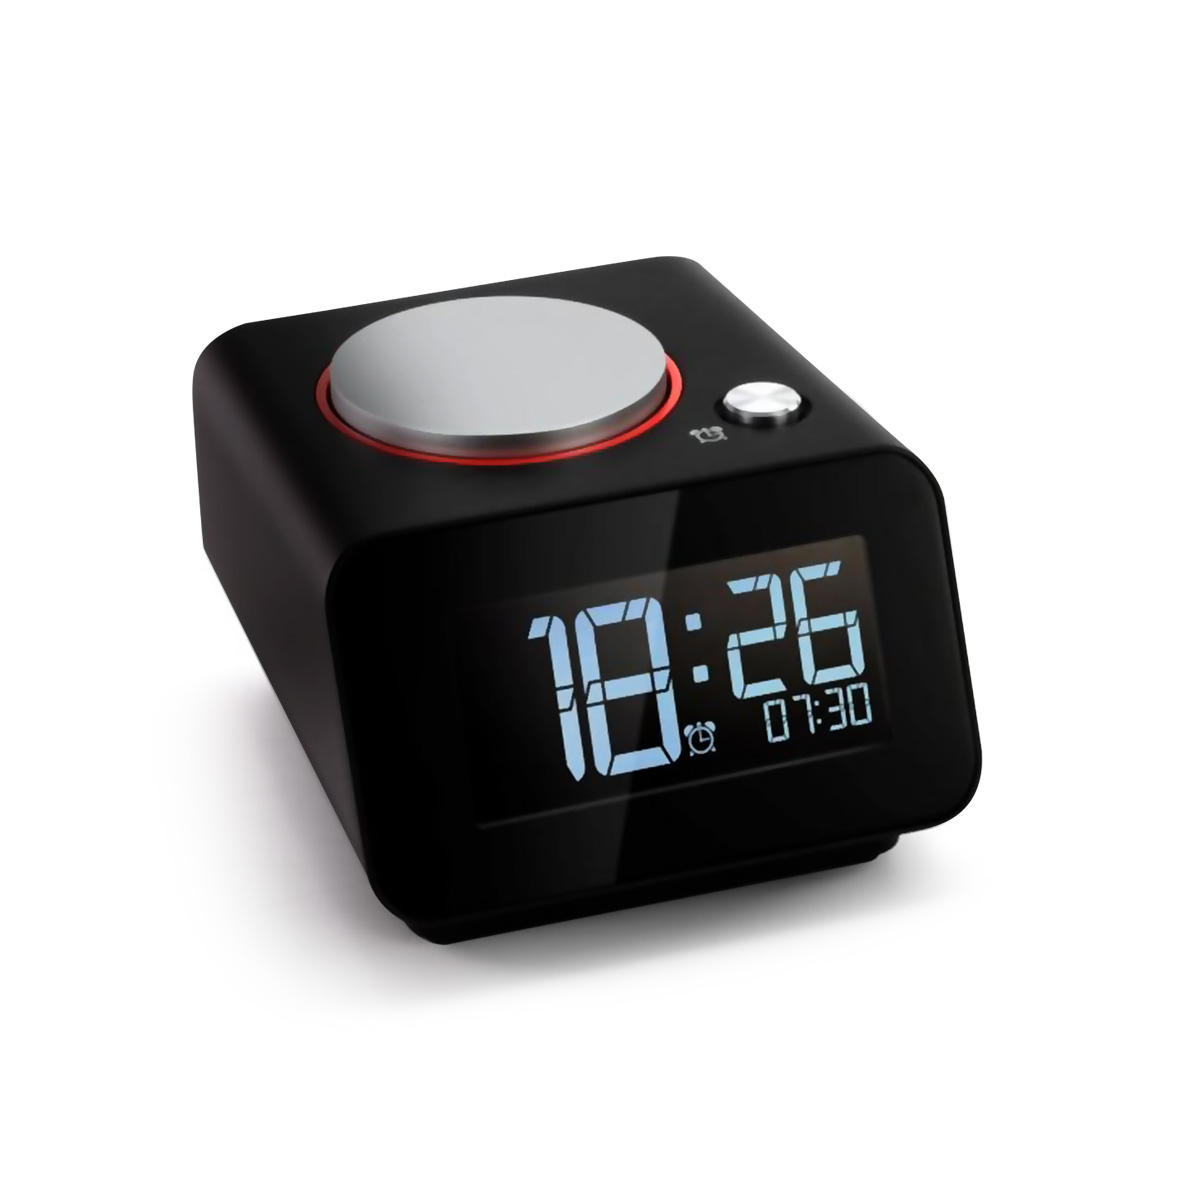 AUGIENB Rechargeable Bedroom Digital Alarm Clock With Dual USB Charging Port For Mobile Phones